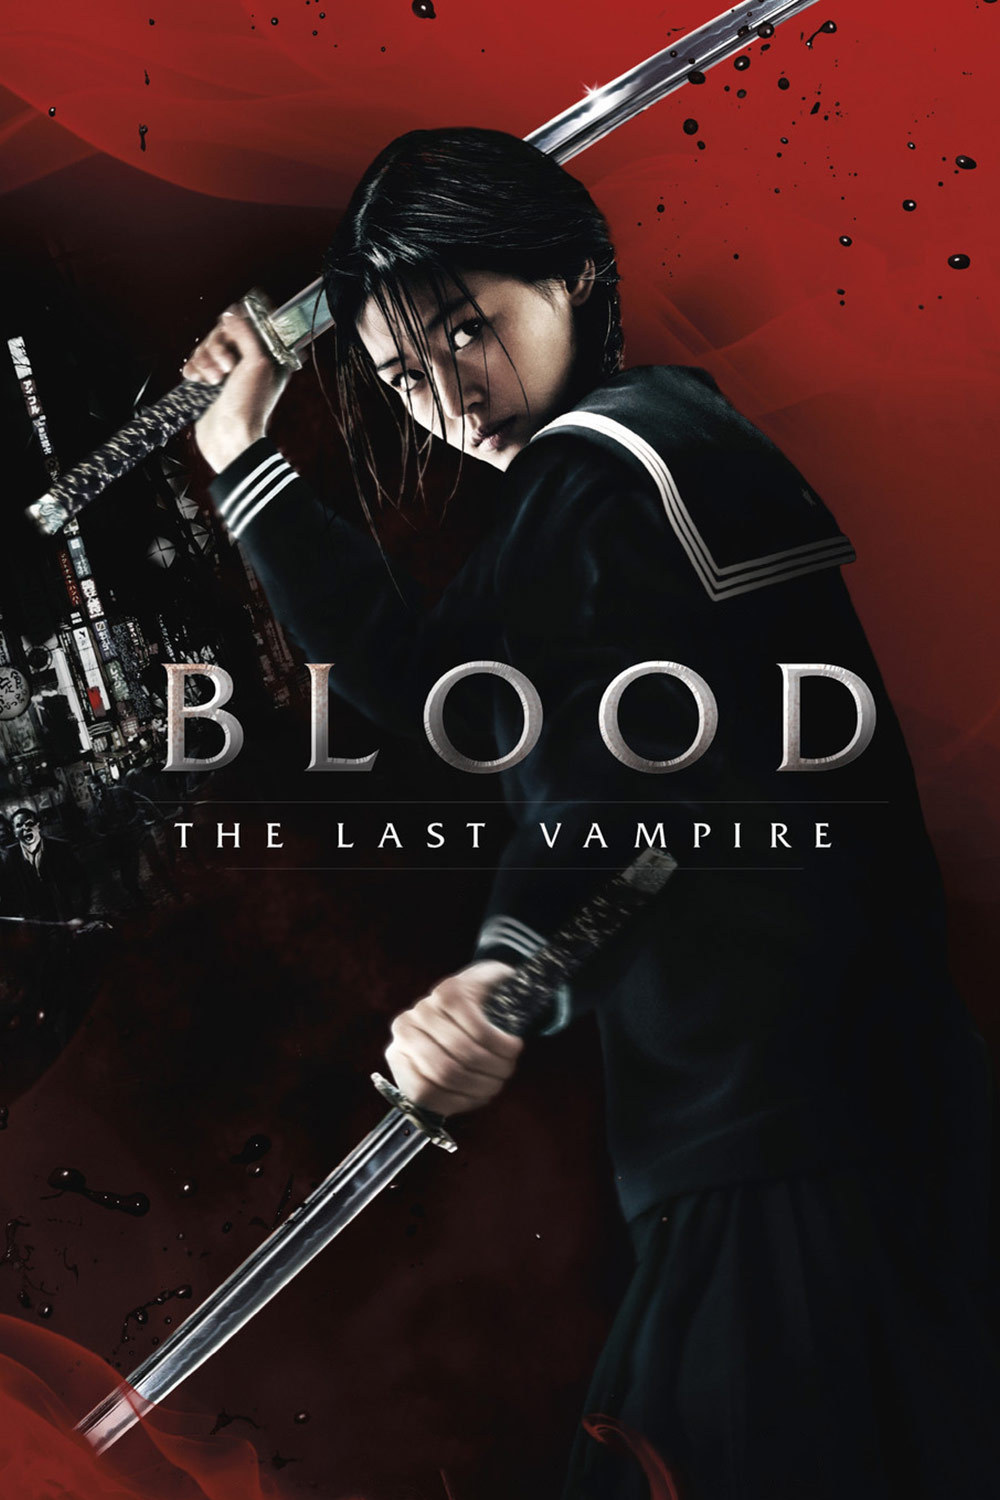 دانلود فیلم Blood The Last Vampire 2009